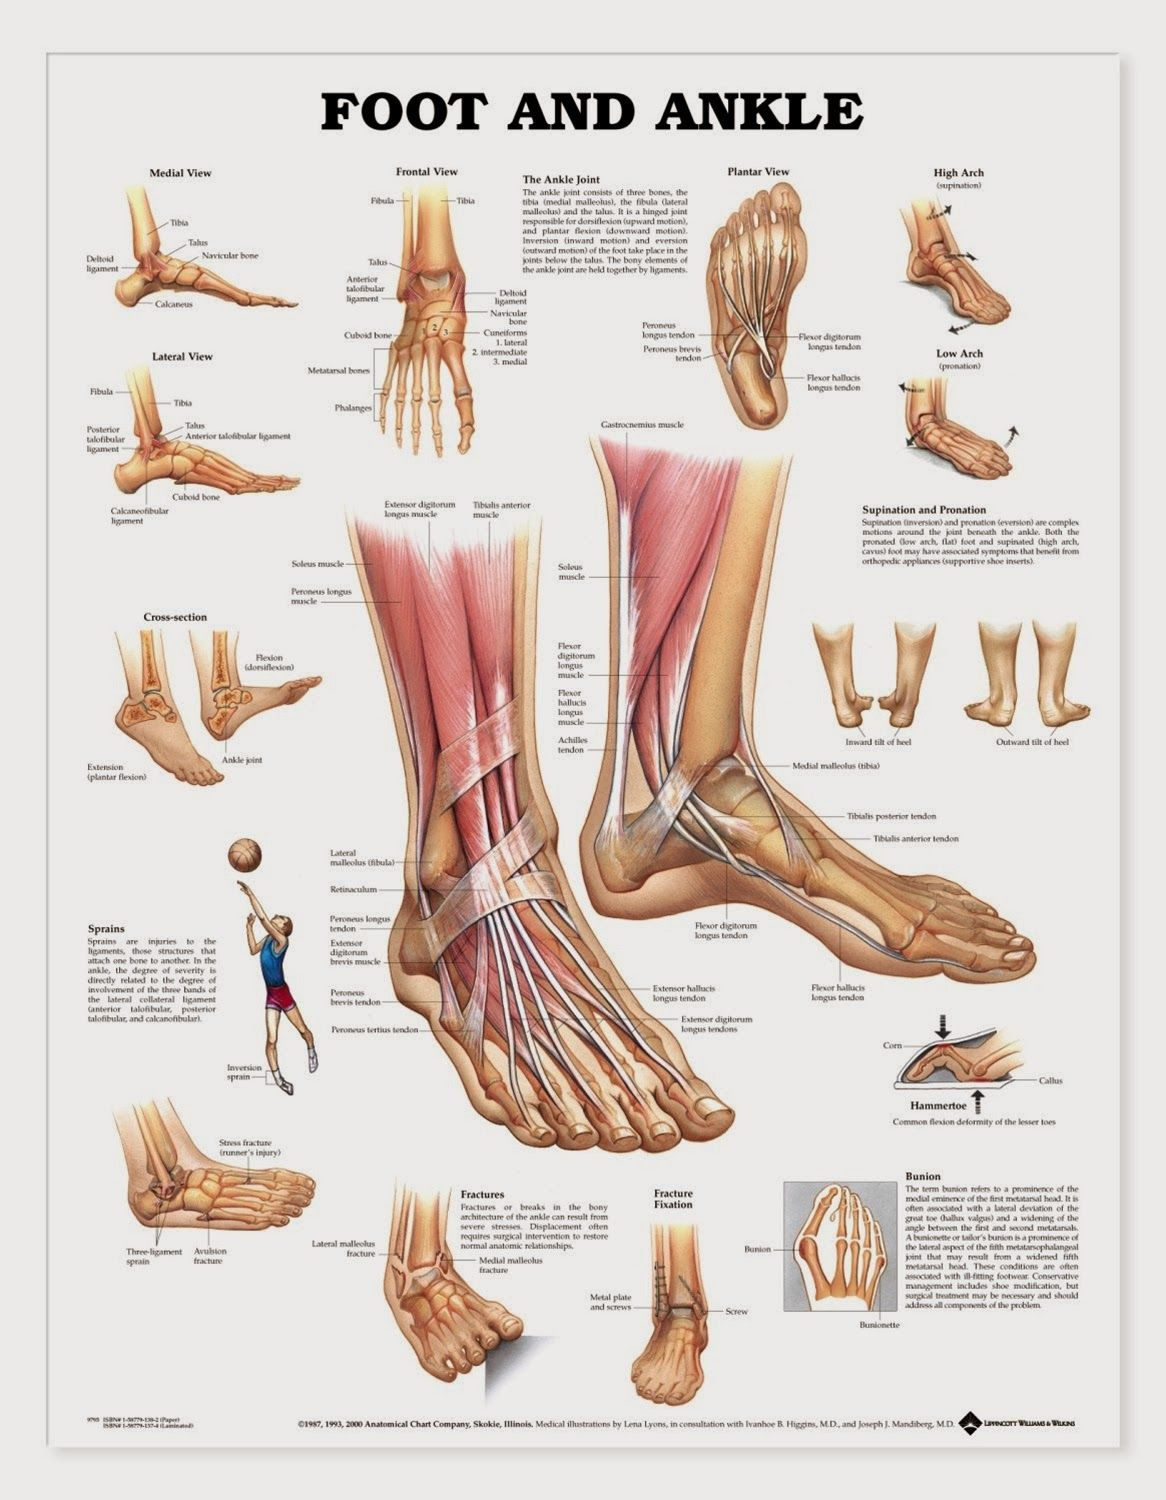 Pin by Sudhir on Home decor | Pinterest | Ankle anatomy, Anatomy and ...